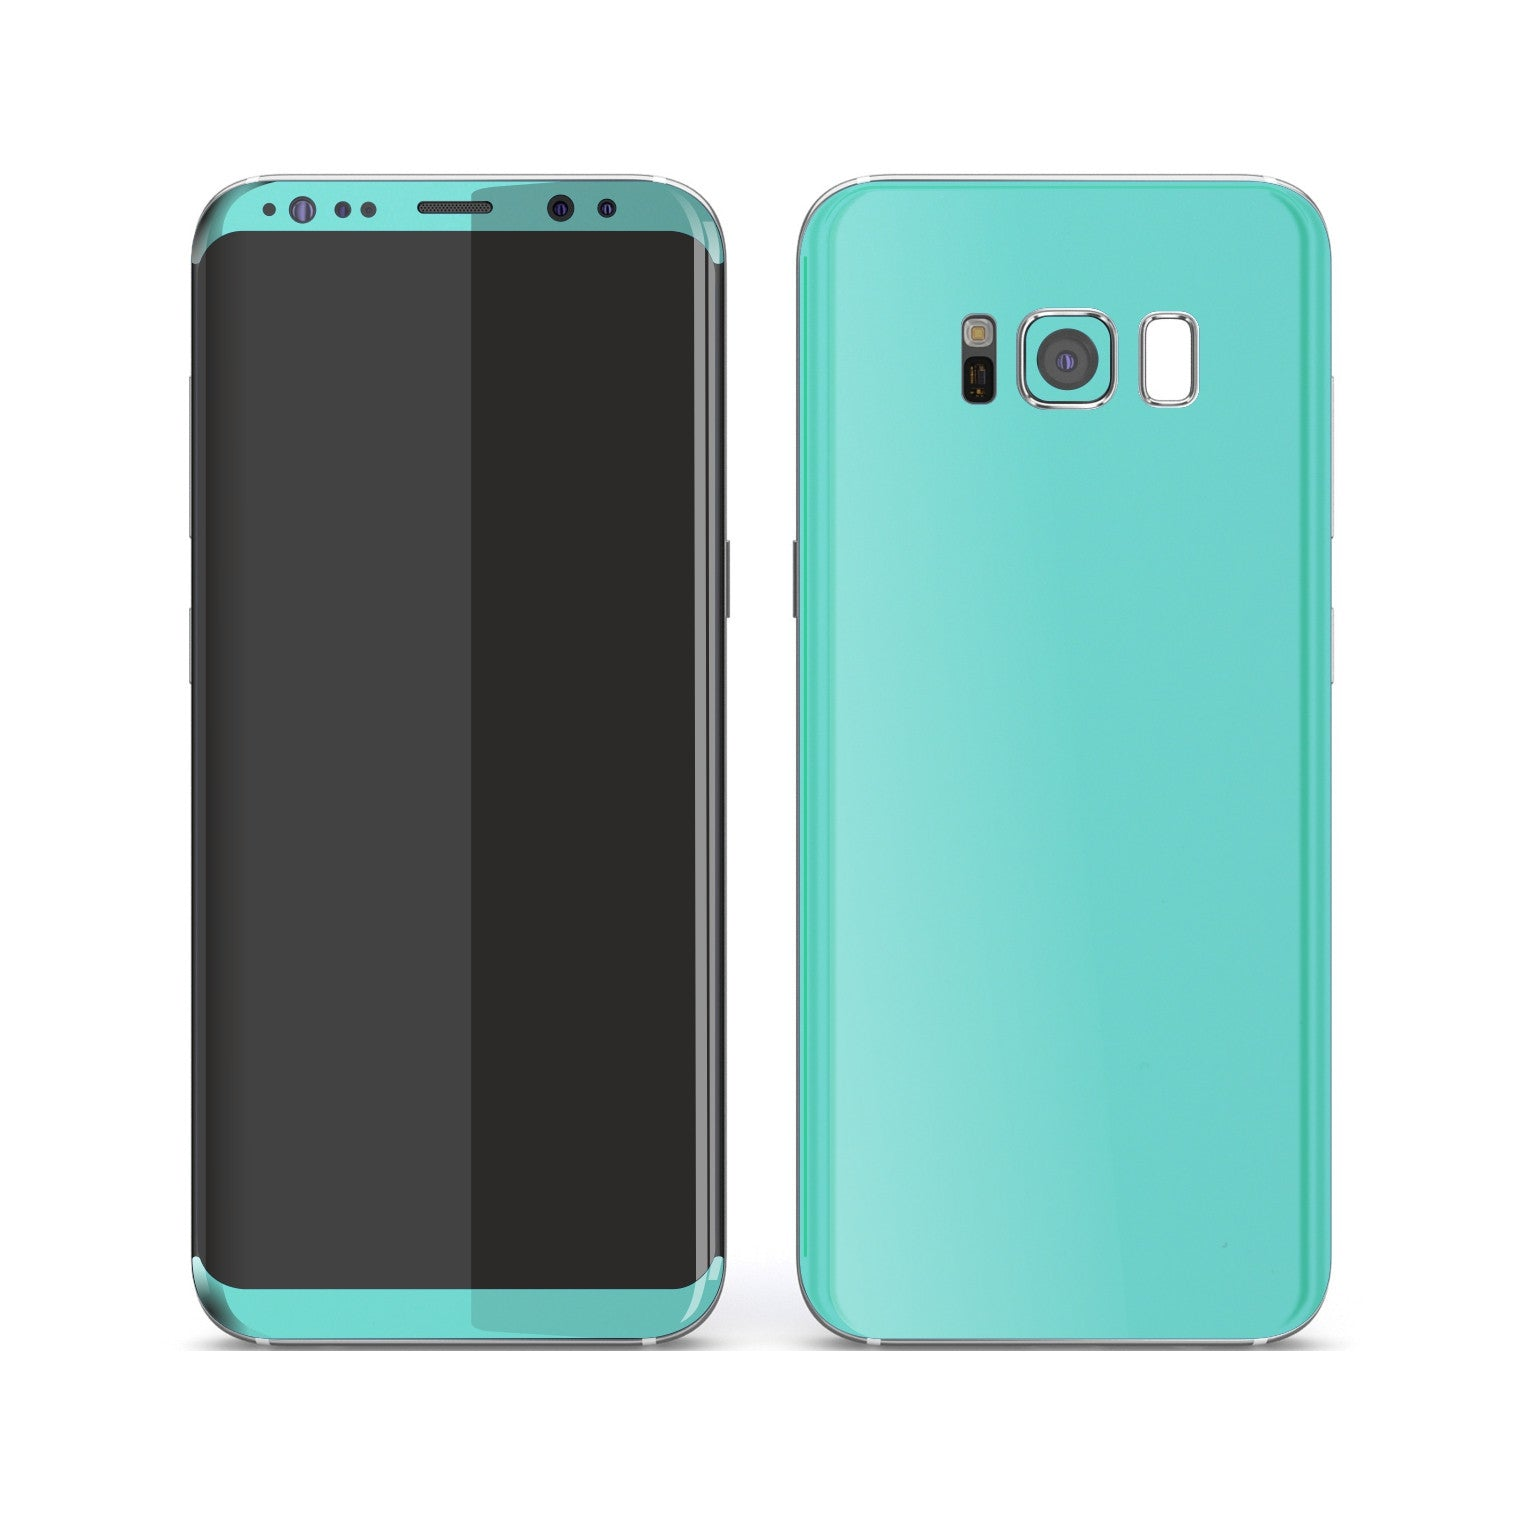 Samsung Galaxy S8 MINT Matt Skin, Decal, Wrap, Protector, Cover by EasySkinz | EasySkinz.com